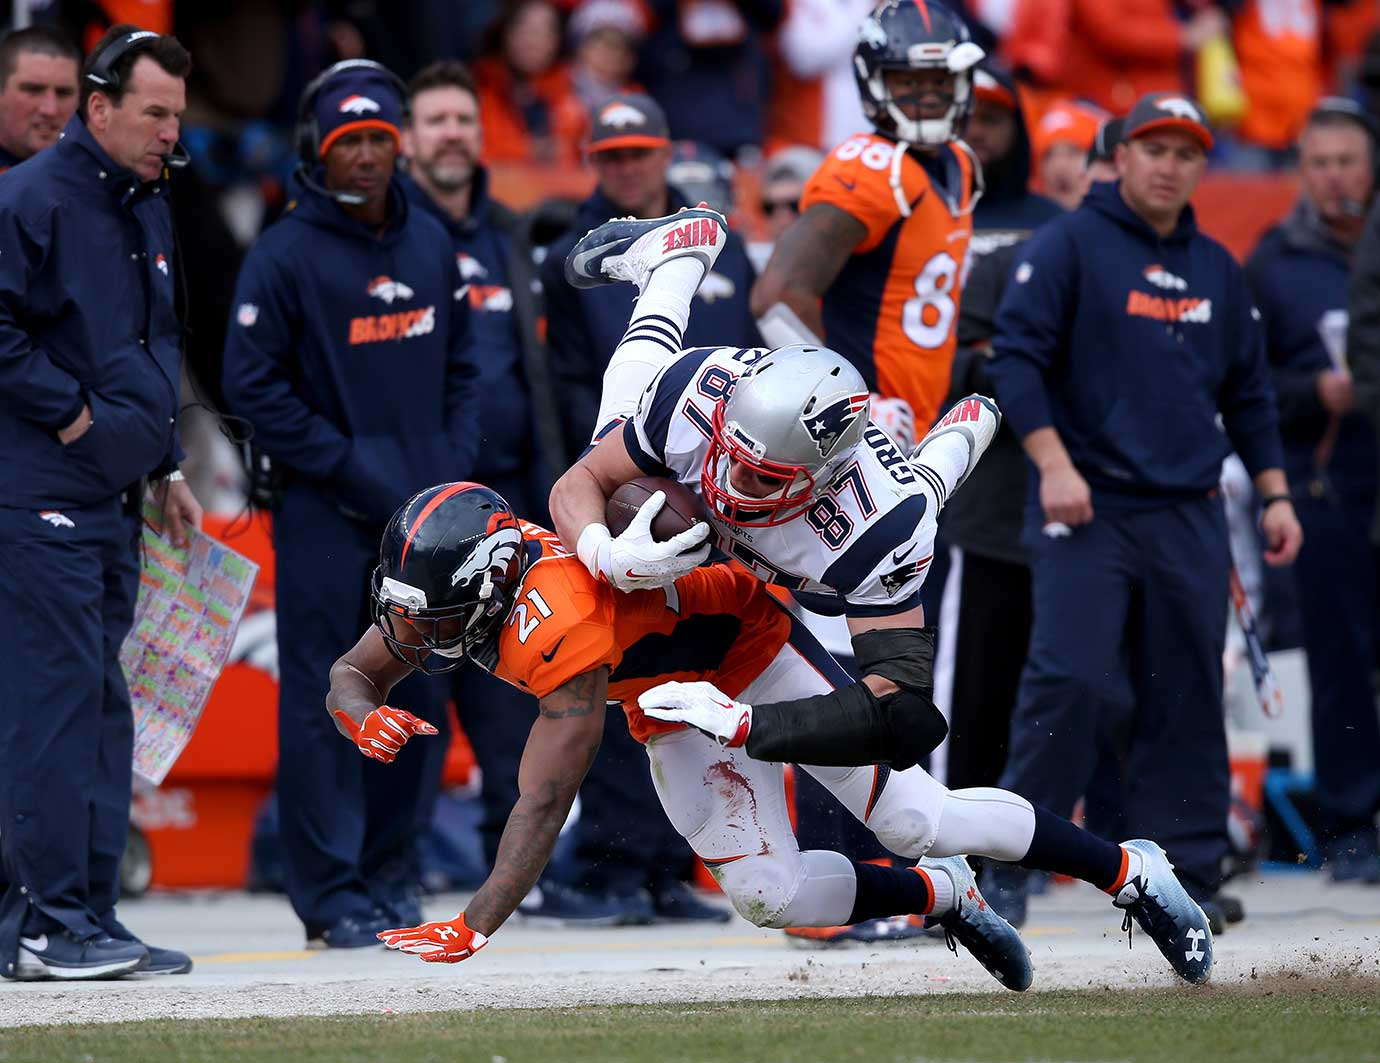 Aqib Talib tackles Rob Gronkowski after a first down in the third quarter.